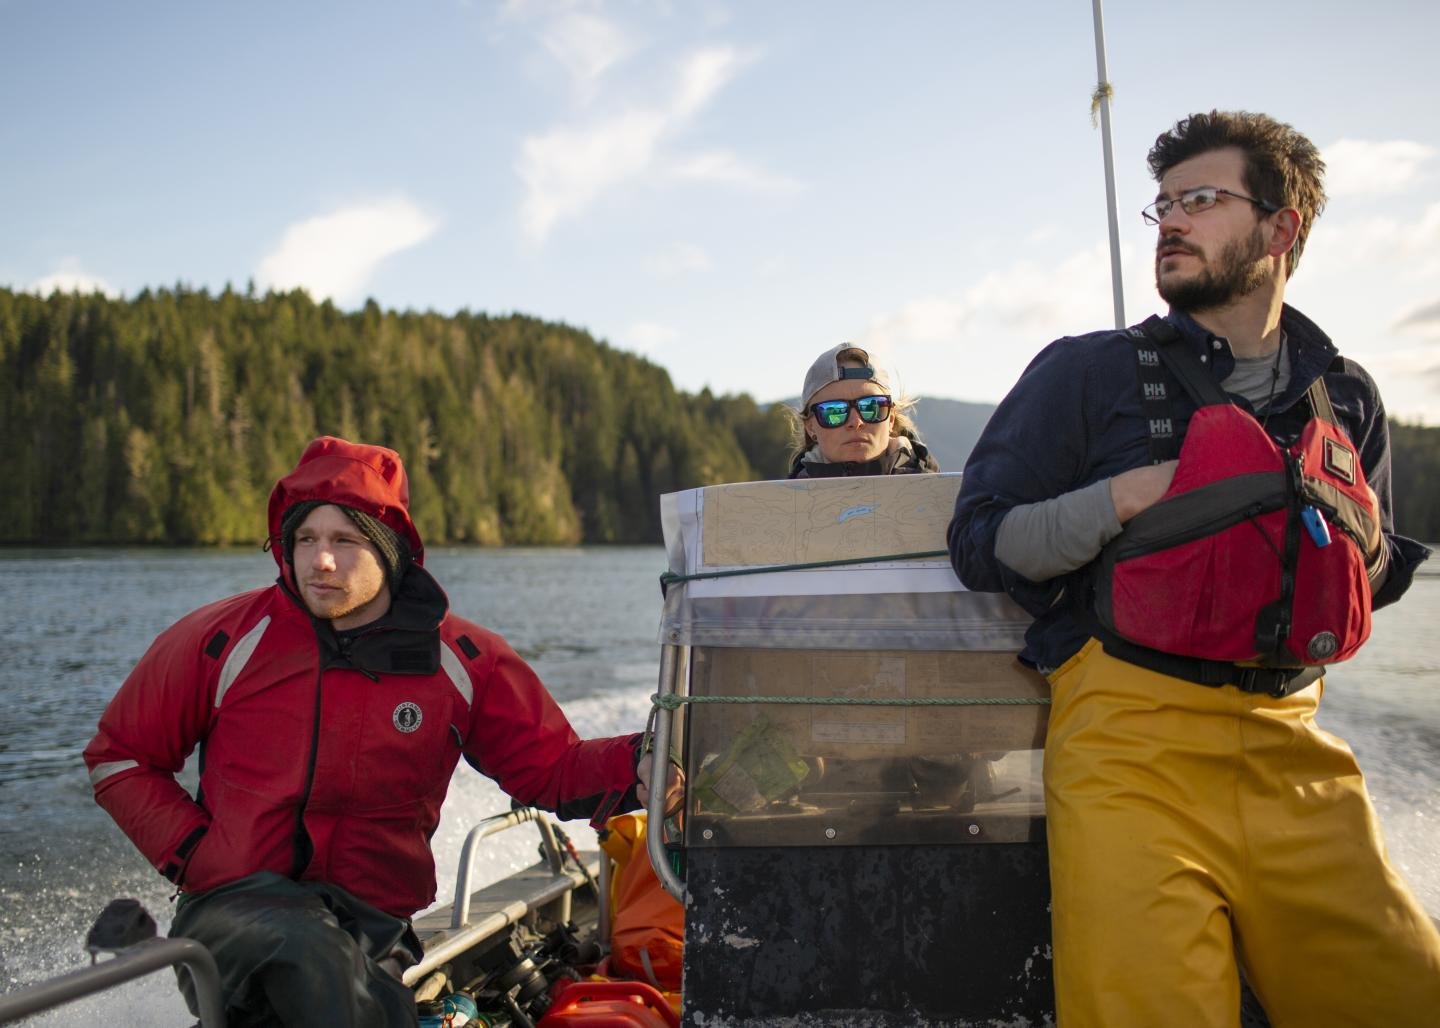 Sampling wild Pacific salmon on the West Coast of Vancouver Island